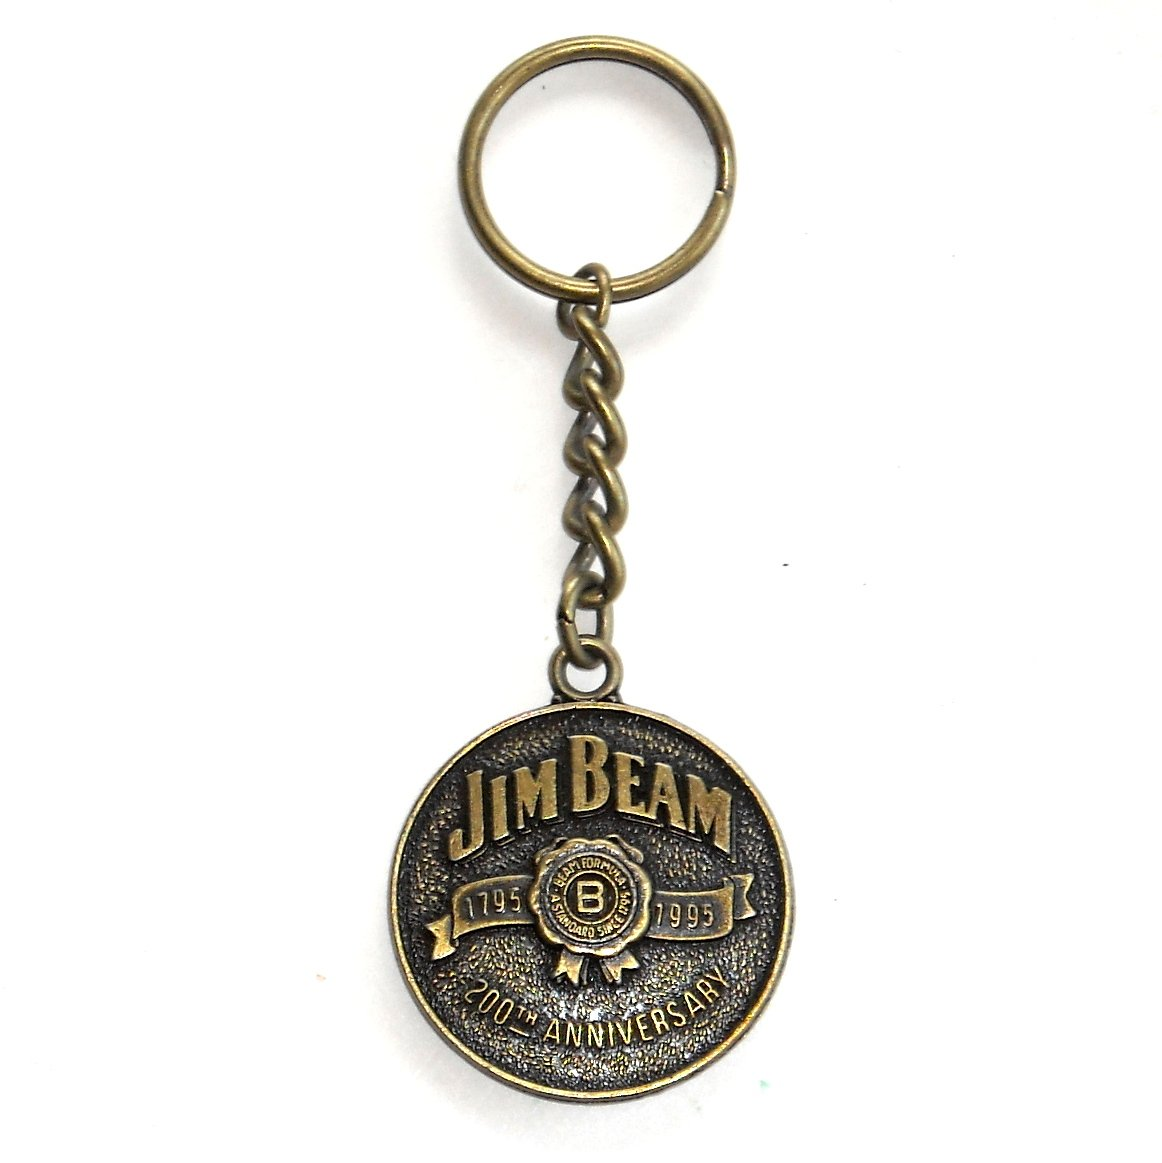 Jim Beam Kentucky Bourbon 200th Anniversary Solid Brass Keychain